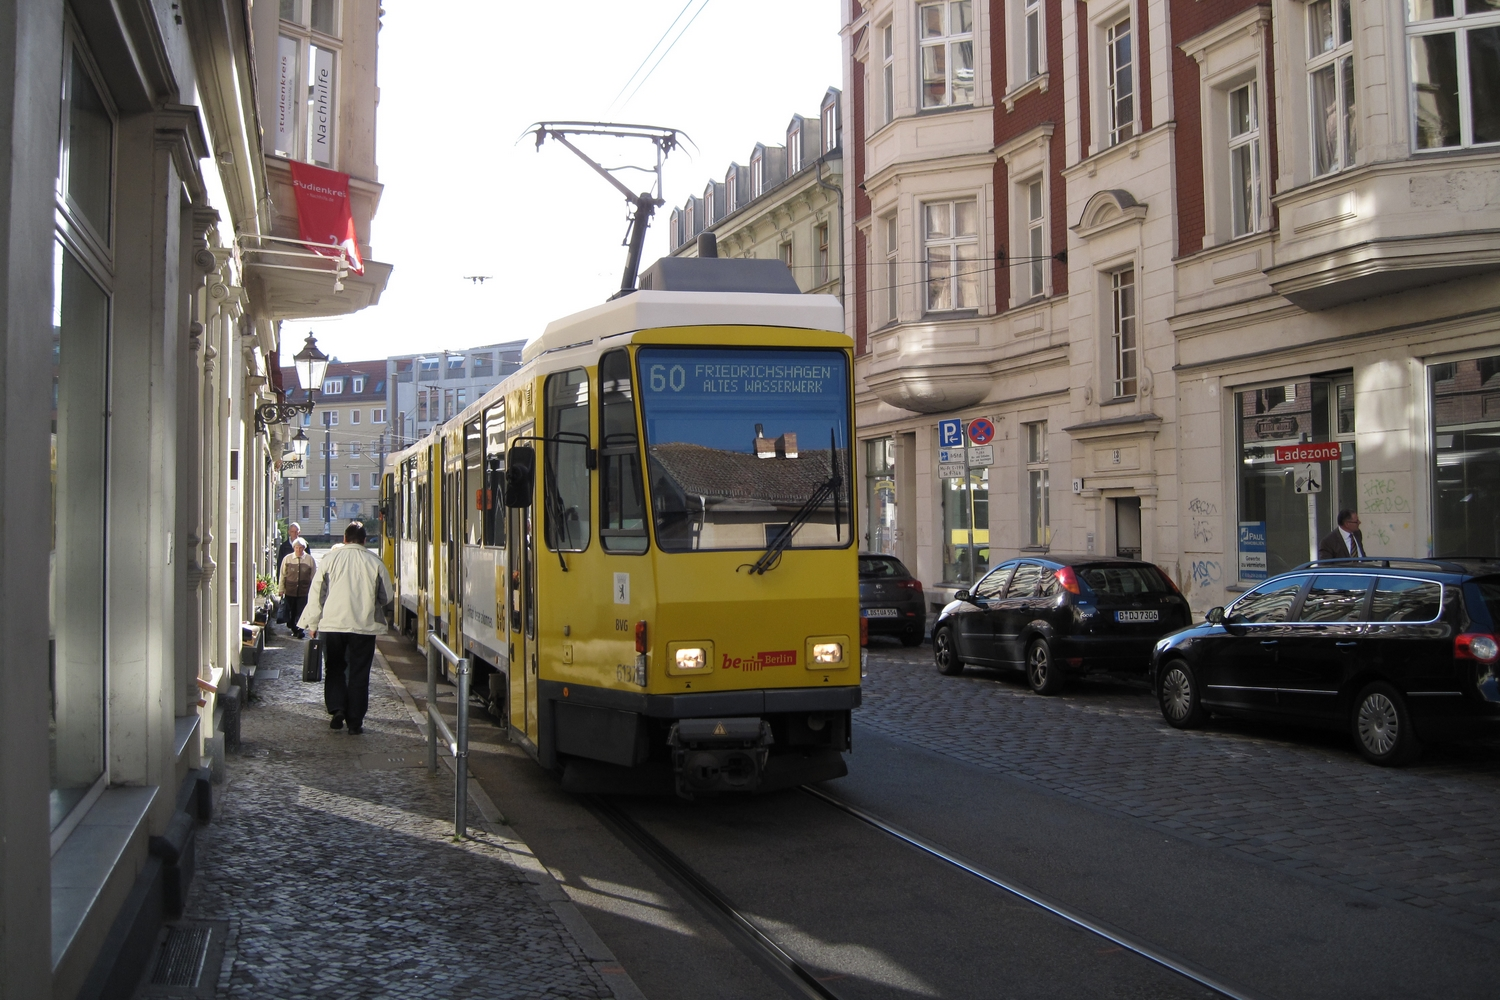 Berlin articulated tram 6137 on tram line 60 on the street Kirchstraße, Köpenick (2012).  Berliner Verkehrsbetriebe (BVG). Articulated tram 6137, manufacturer Tatra, type KT4D-t mod, on tram line 60, in the direction towards Friedrichshagen Altes Wasserwerk.